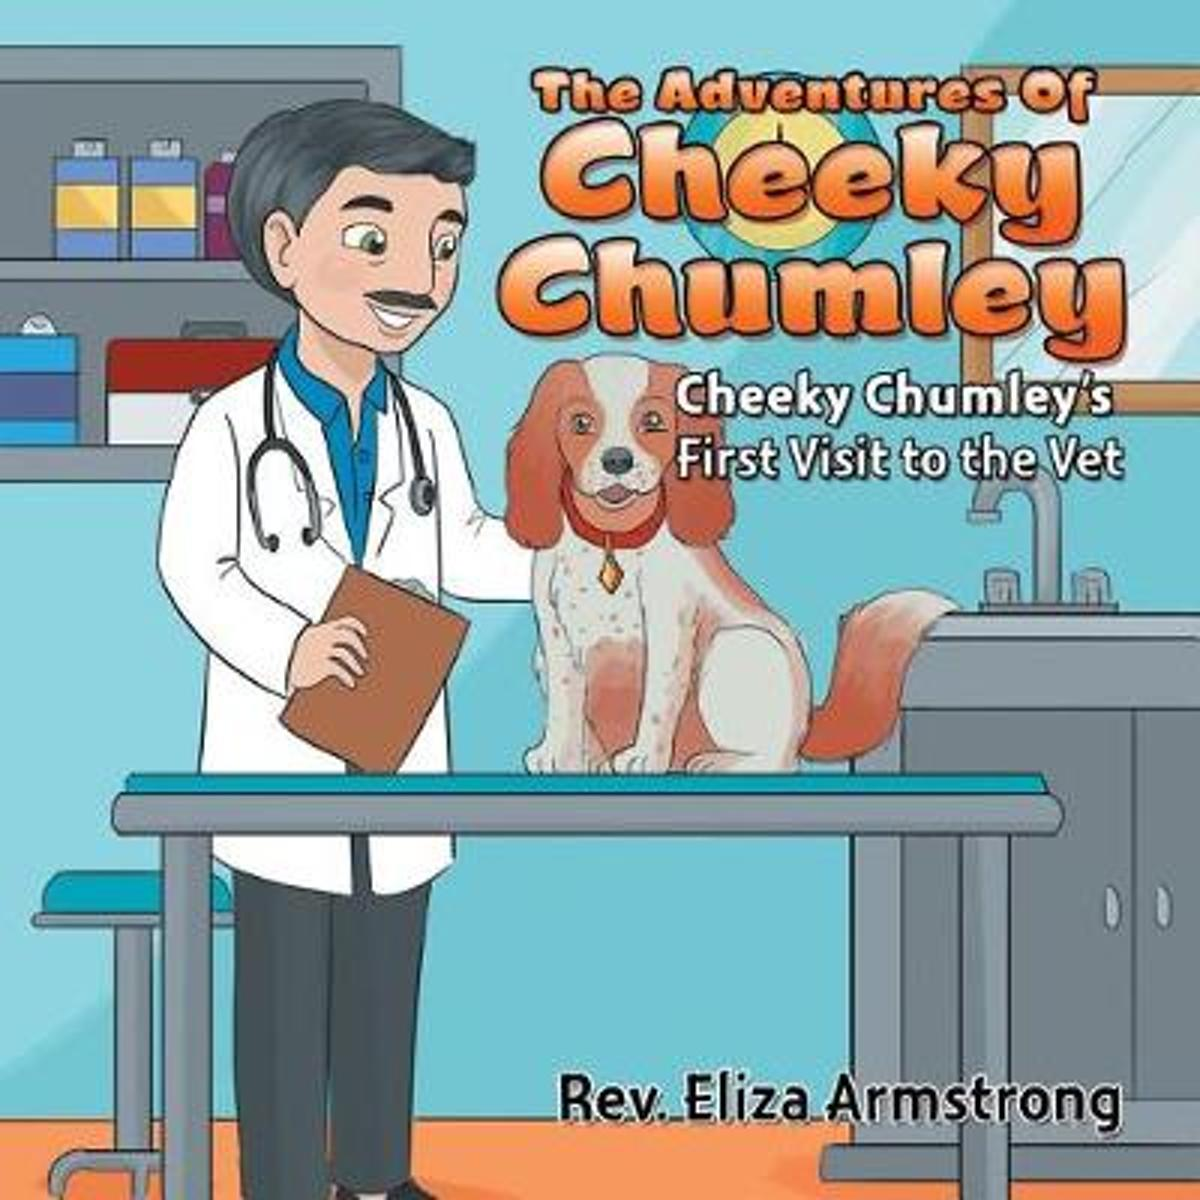 The Adventures of Cheeky Chumley